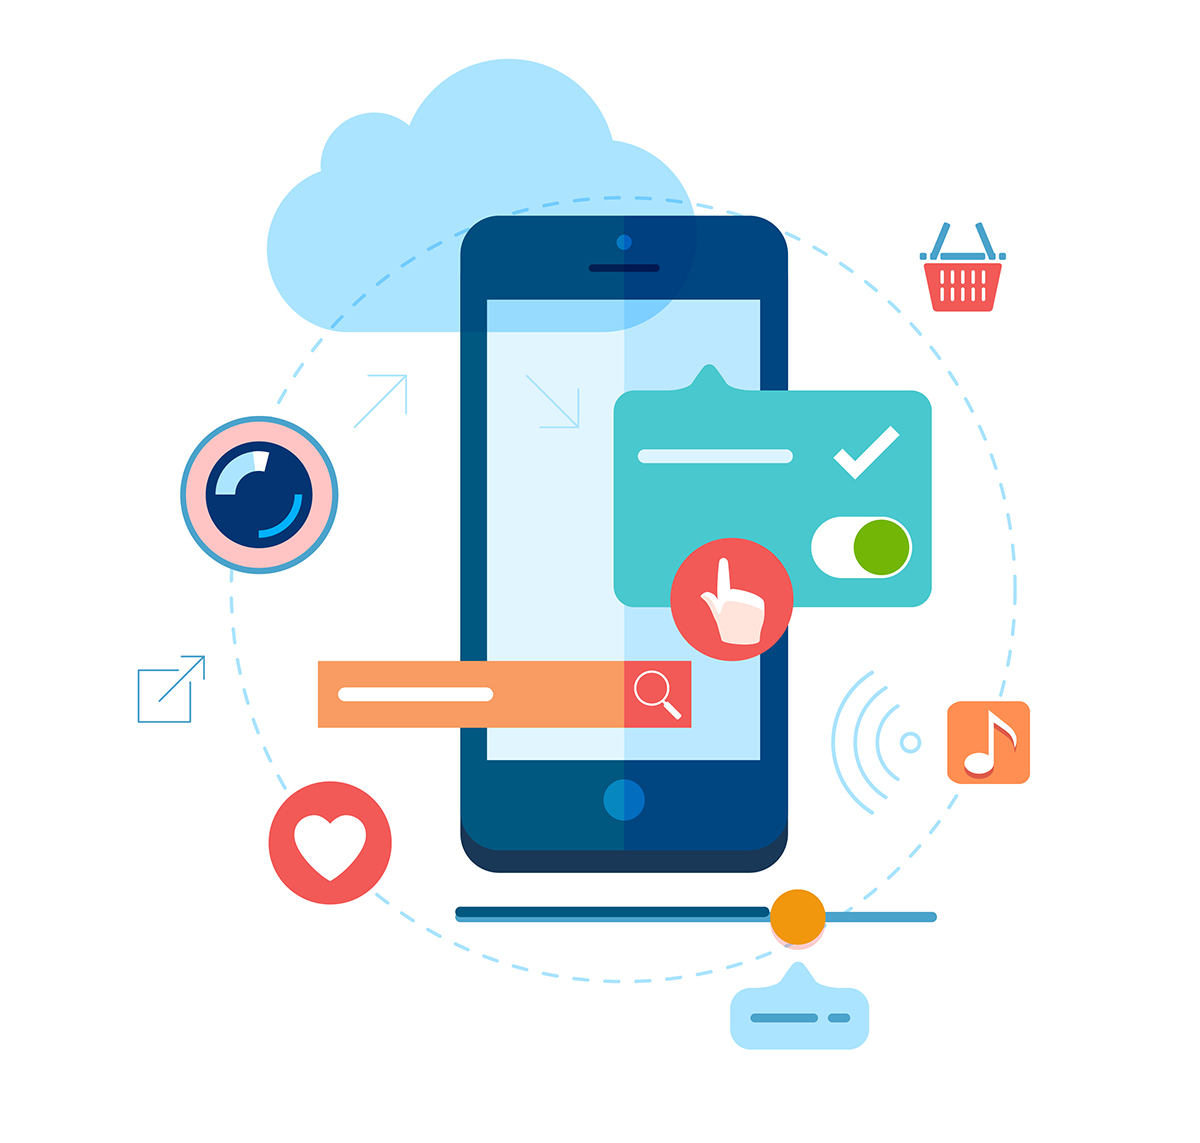 Interface elements for mobile apps development